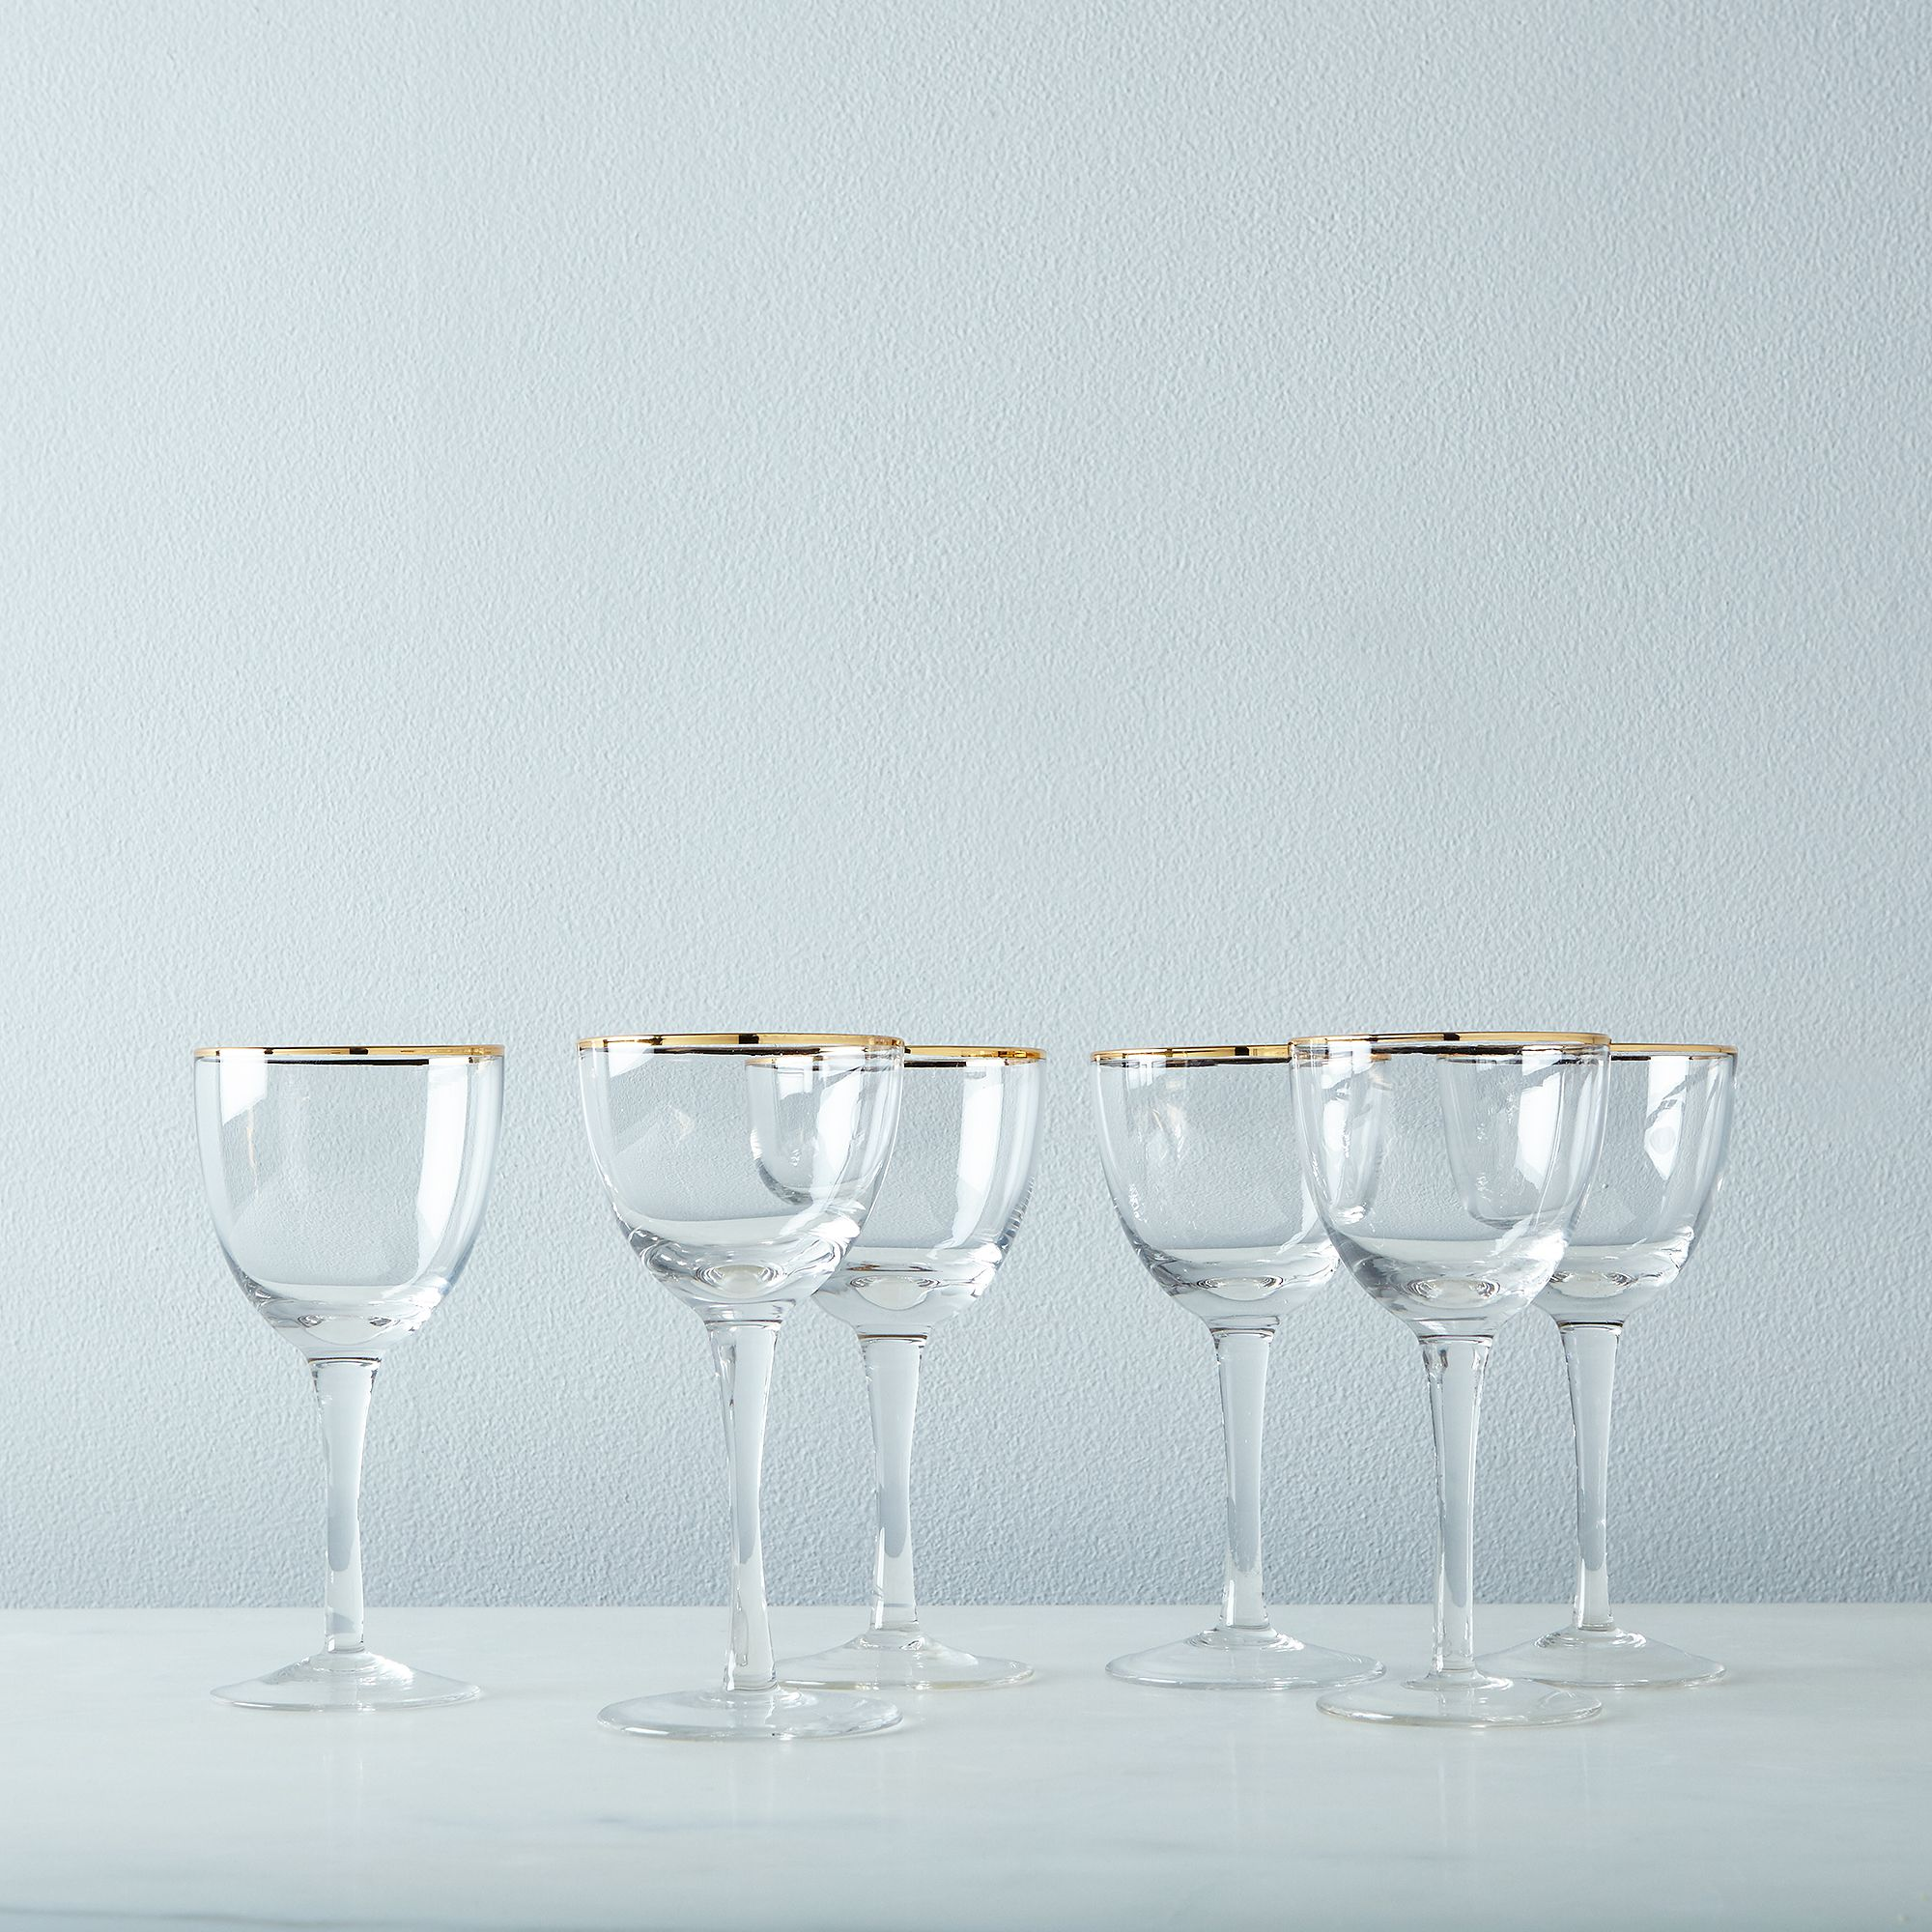 0192f363 f81f 4fb8 accf 015b17523a9b  2016 0411 cocktail kingdom metallic rimmed cocktail glasses gold rim silo rocky luten 016